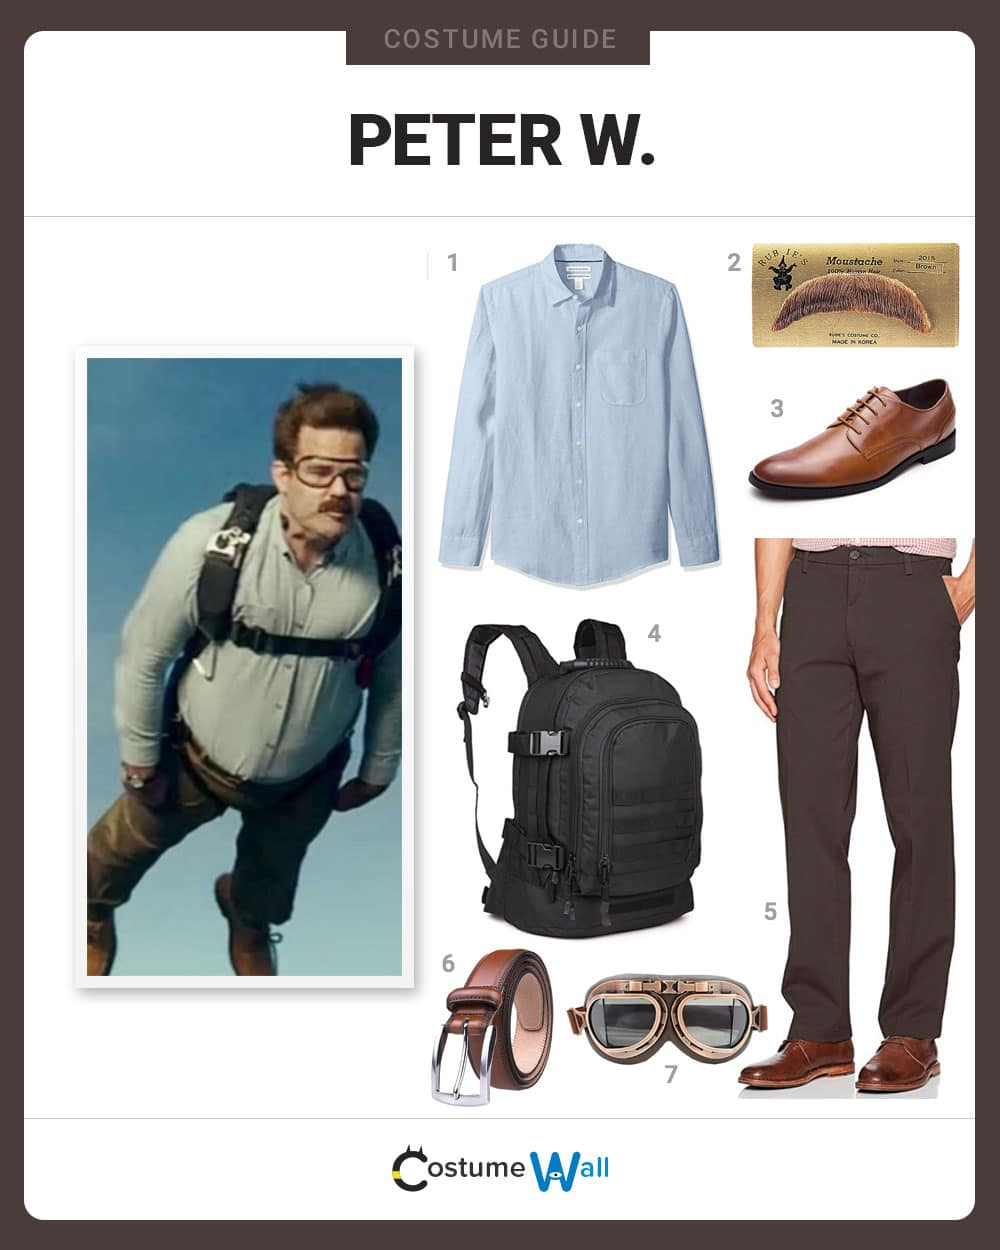 Peter W. Costume Guide